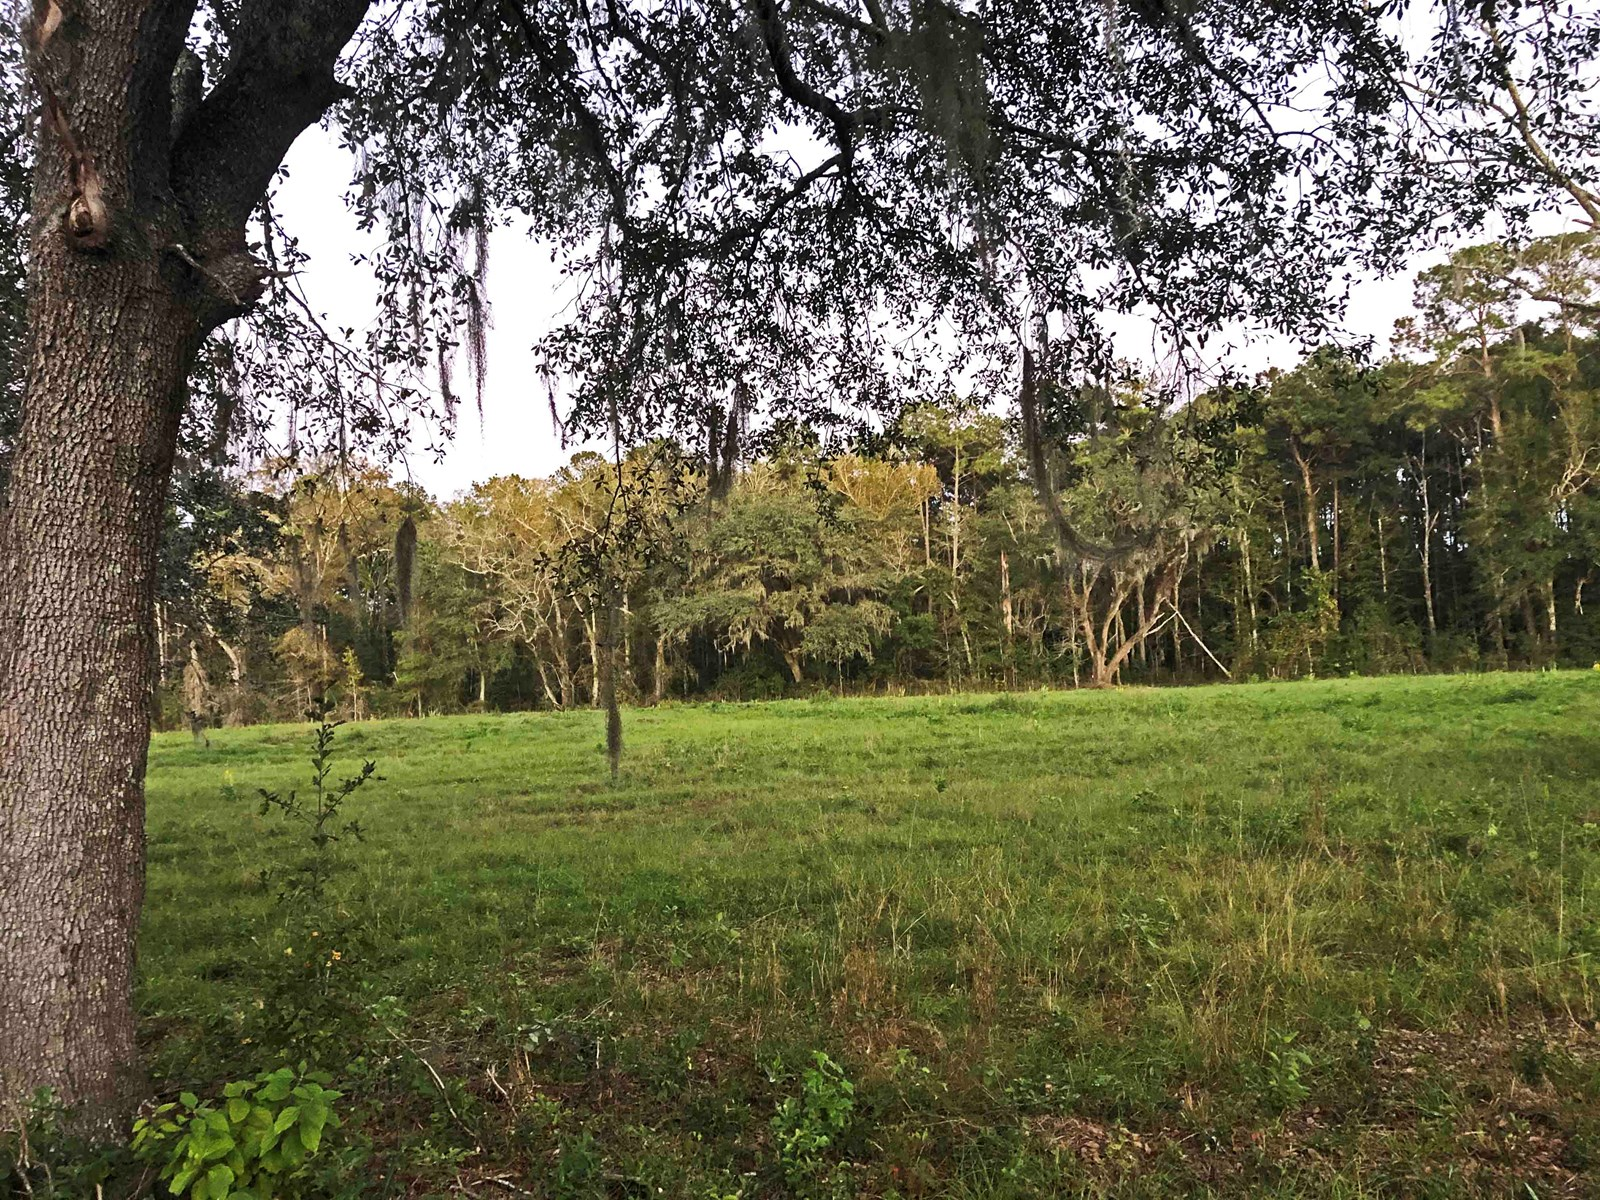 N. FL Land for Sale, 5 ACRES WITH PASTURE AND LONGLEAF PINE